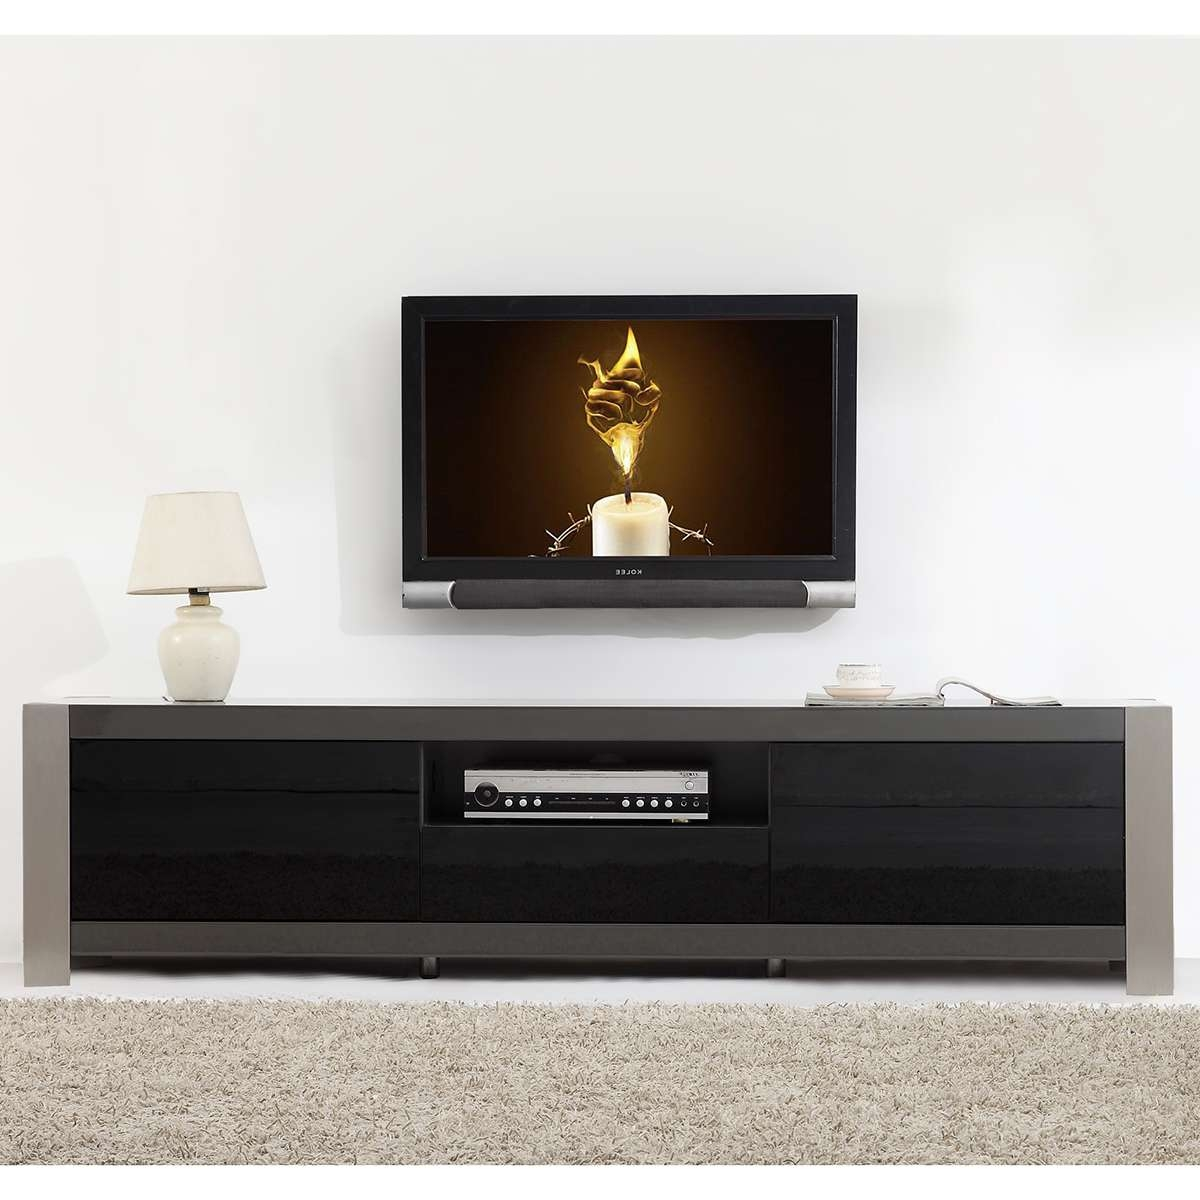 Contemporary Tv Stands Toronto In Stylized Together With Tv Wall Intended For Contemporary Black Tv Stands (View 5 of 15)